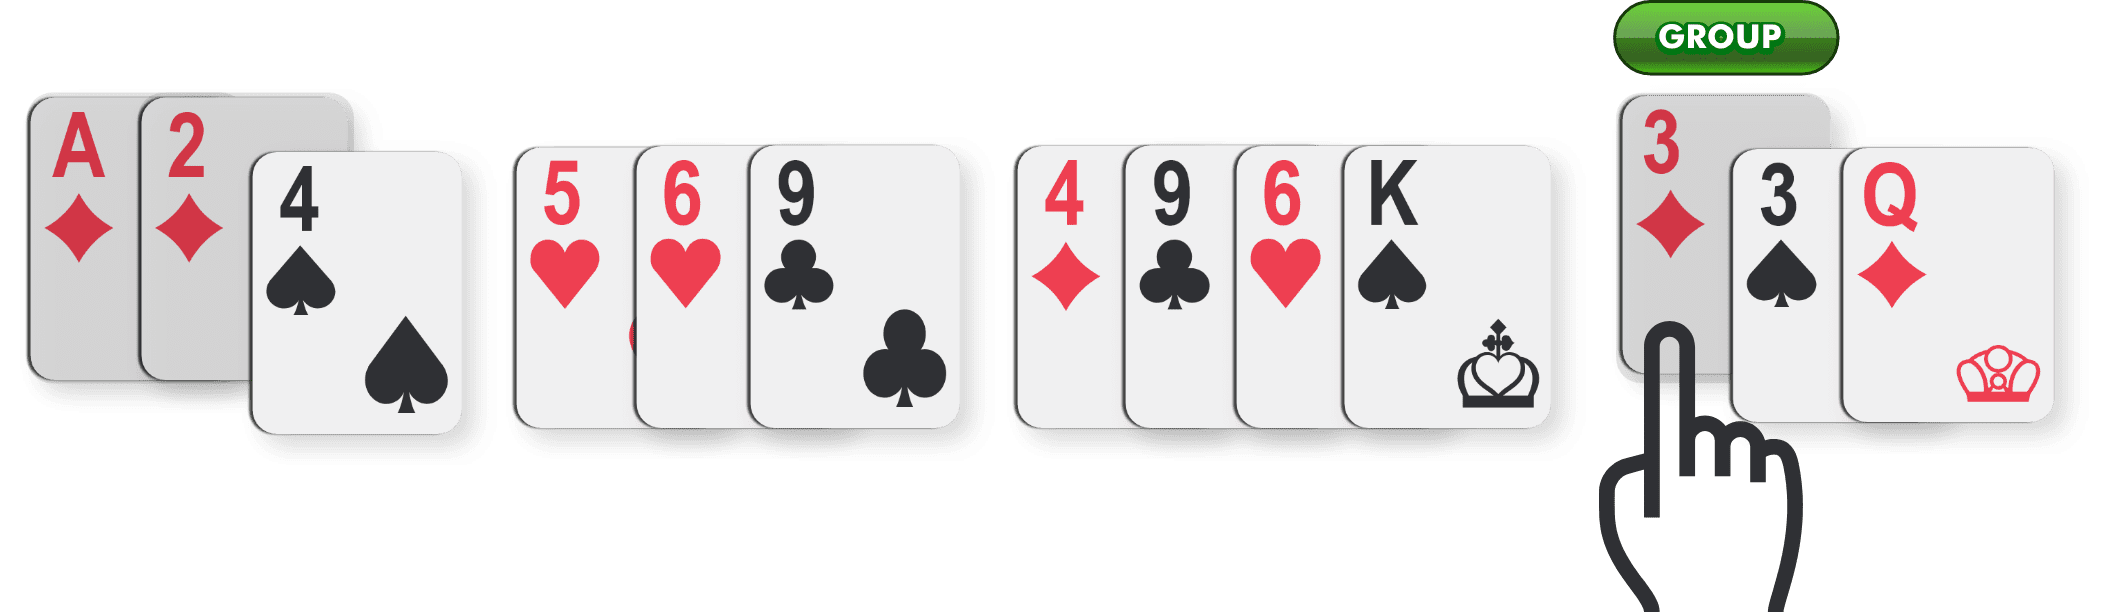 How to Group Rummy Card Game